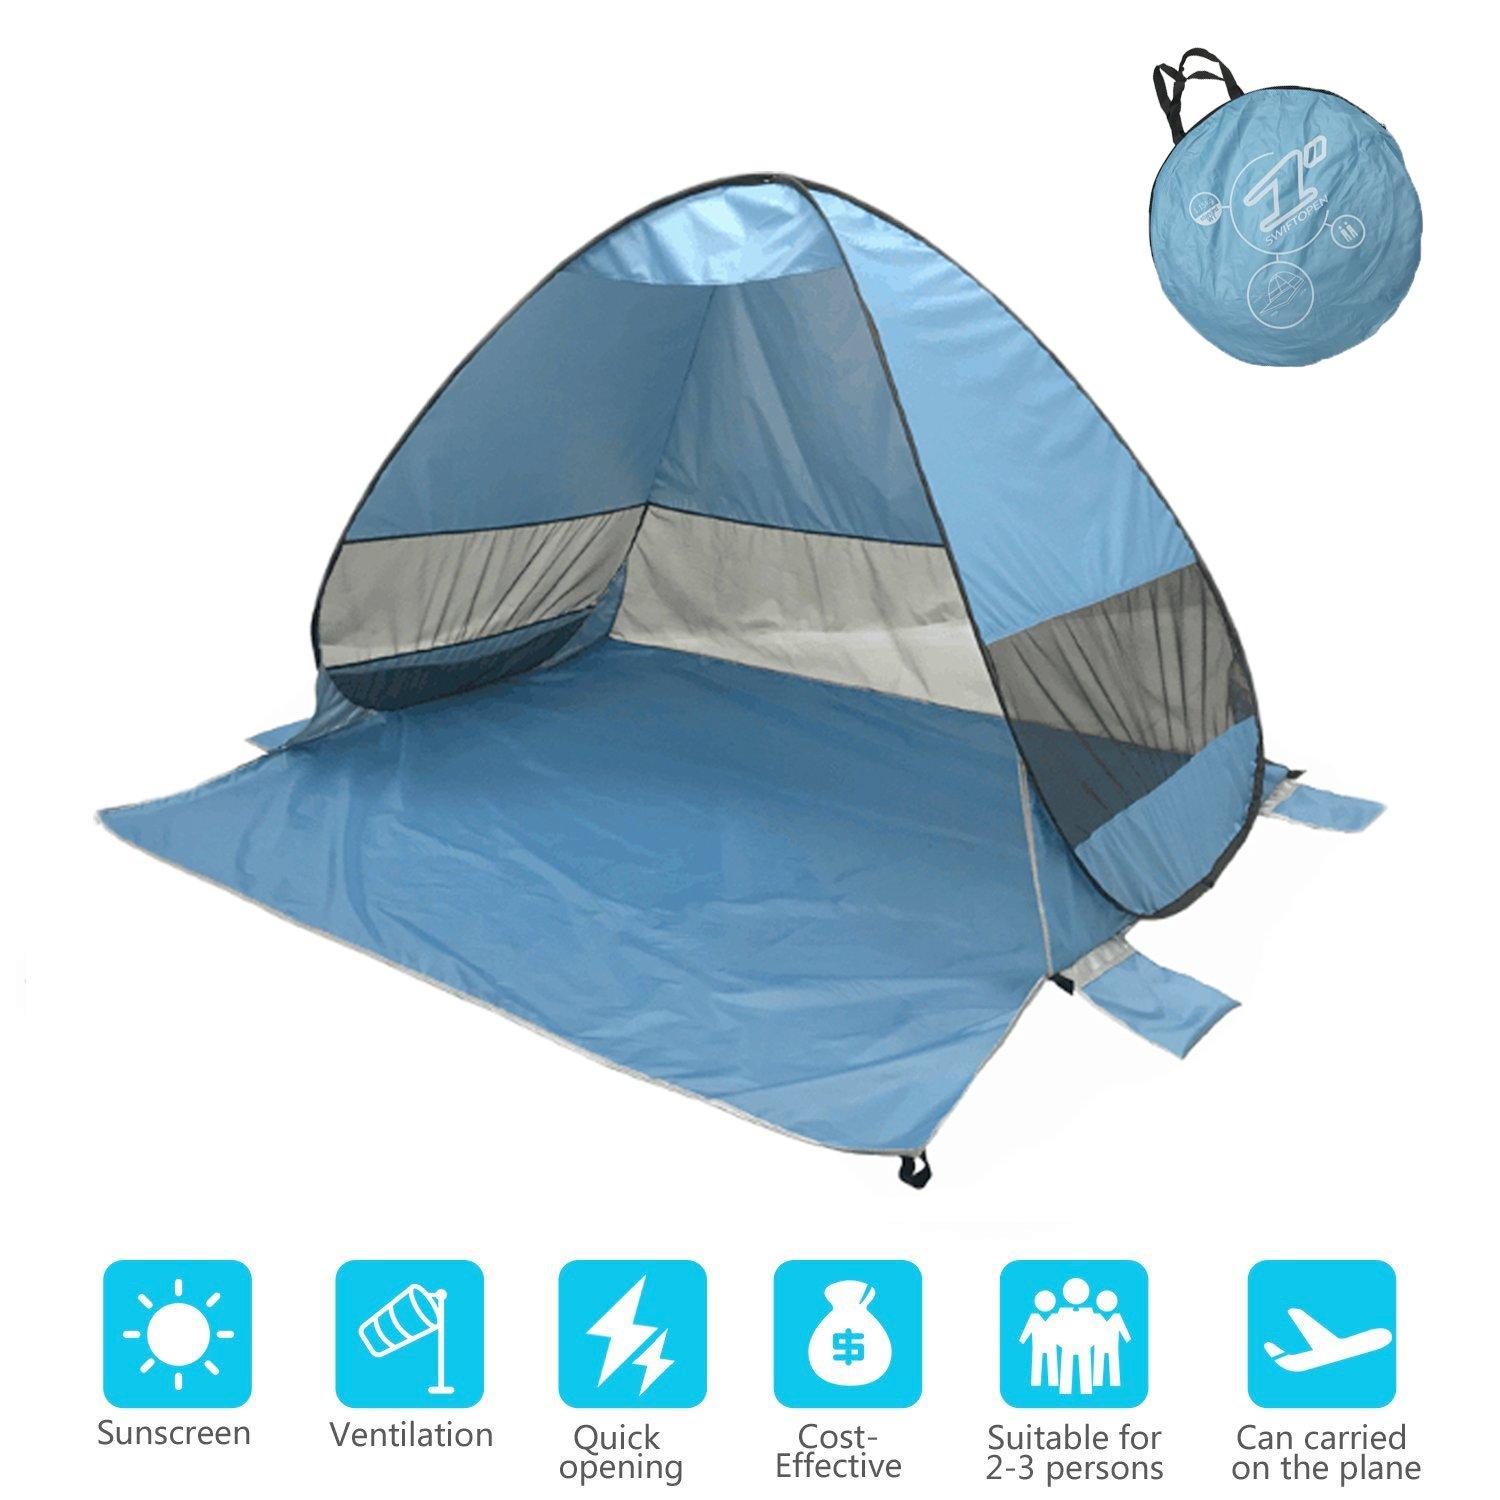 Onmiy Beach Tent Shade Anti UV Pop Up Tent For Outdoor Oversized Design 2-3 Person Lightweight Portable Cabana Sets up in Seconds